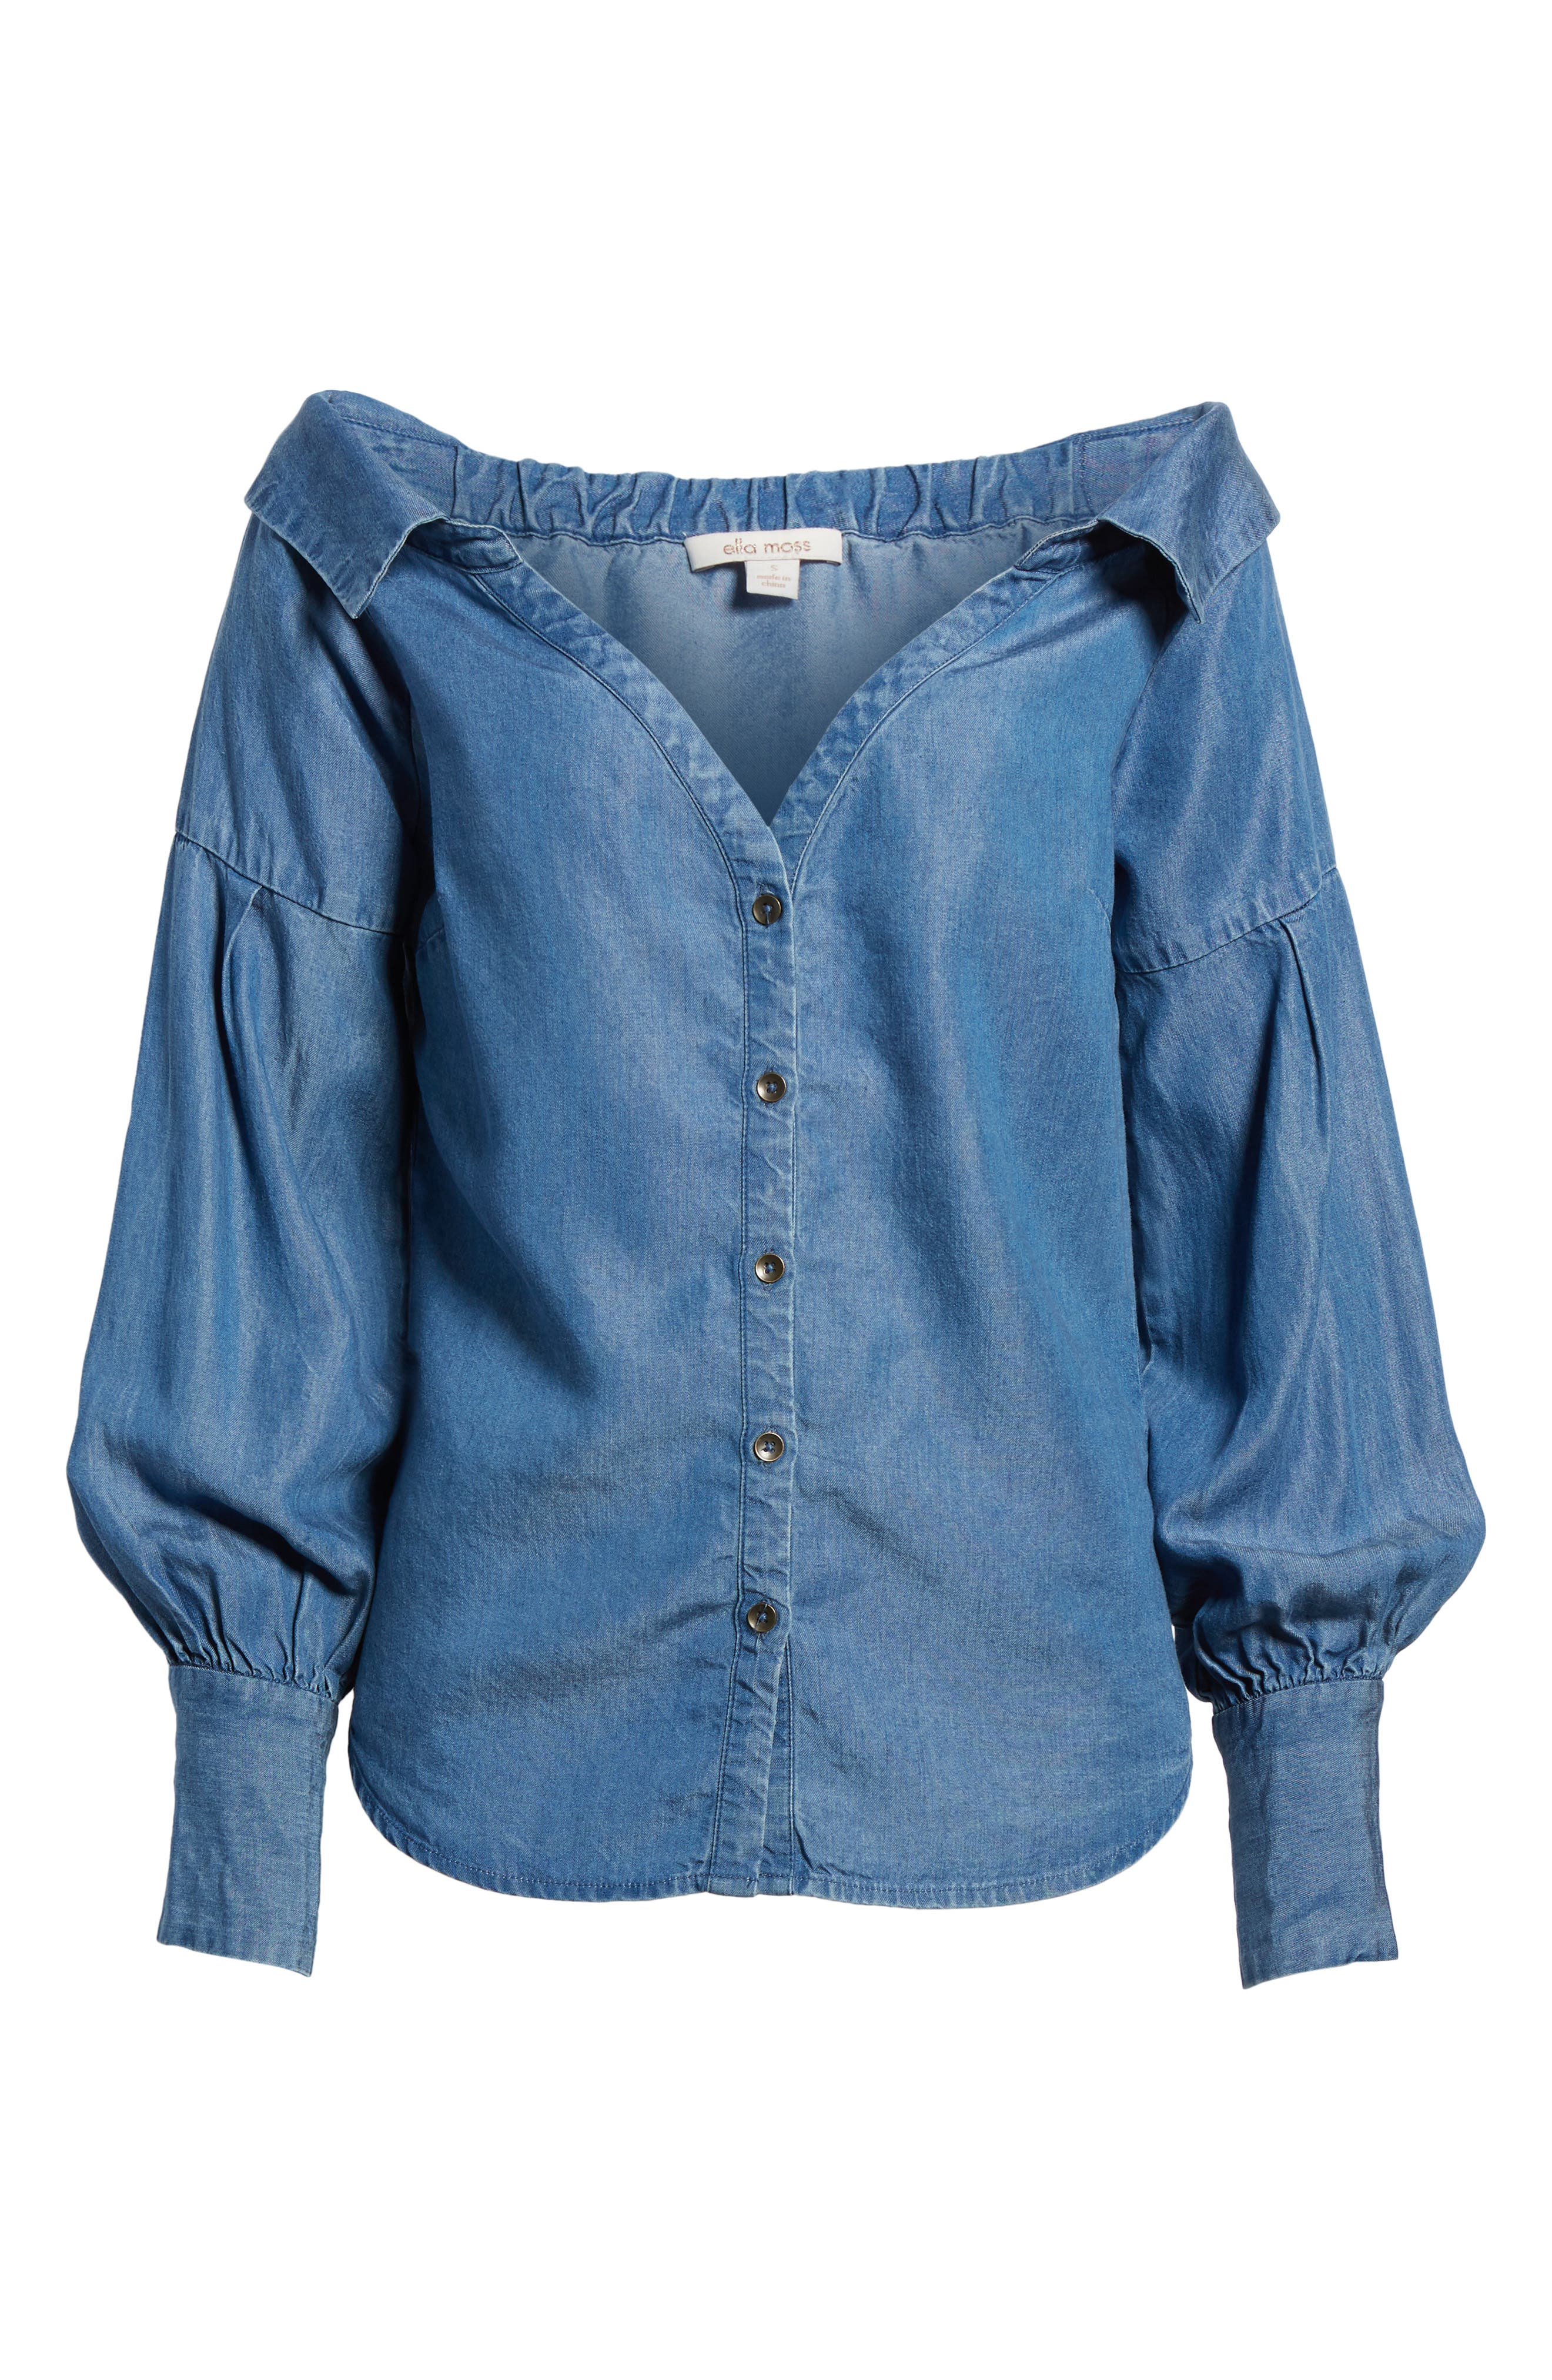 Off the Shoulder Chambray Top,                             Alternate thumbnail 6, color,                             466